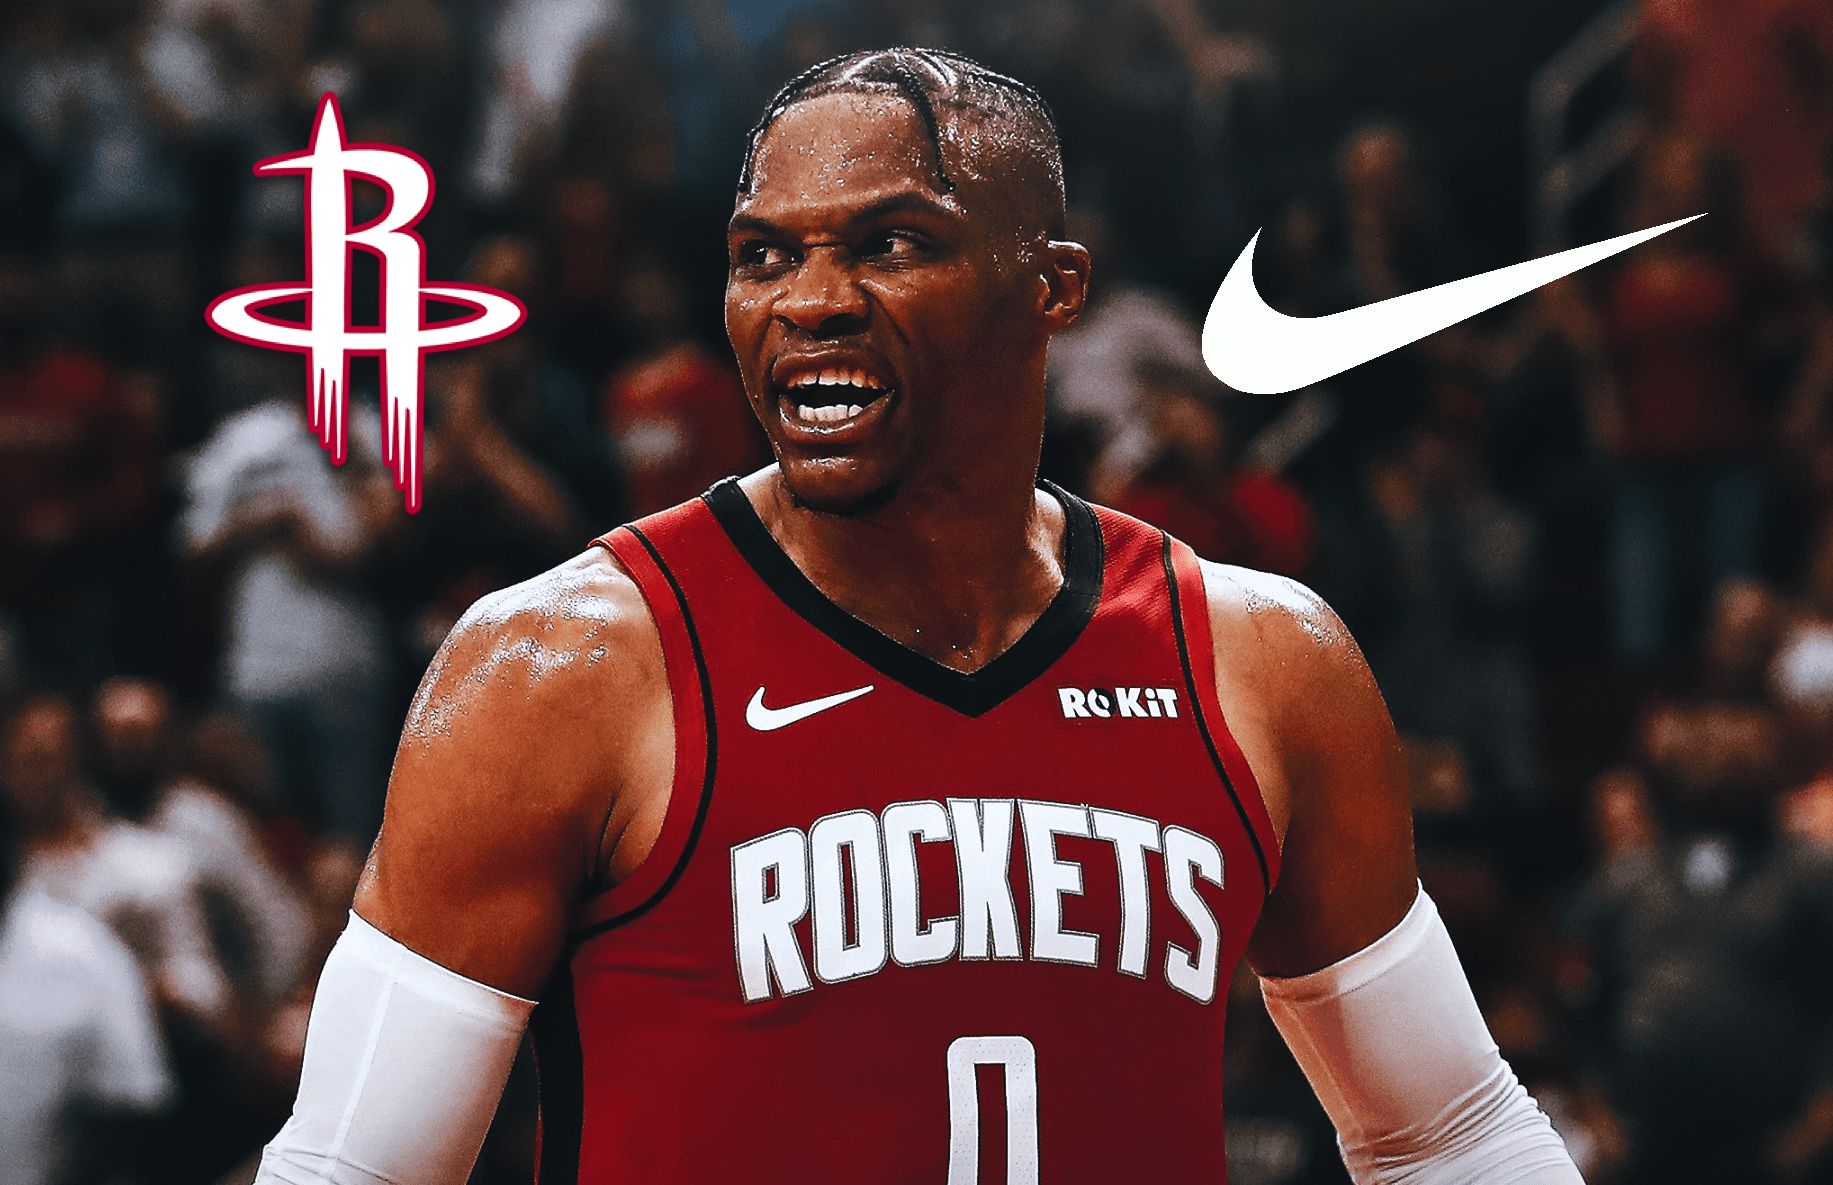 Premier League Russell Westbrook Why Not Russell Westbrook Gif James Harden And Russell In 2020 Russell Westbrook Wallpaper Russell Westbrook Russell Westbrook Face